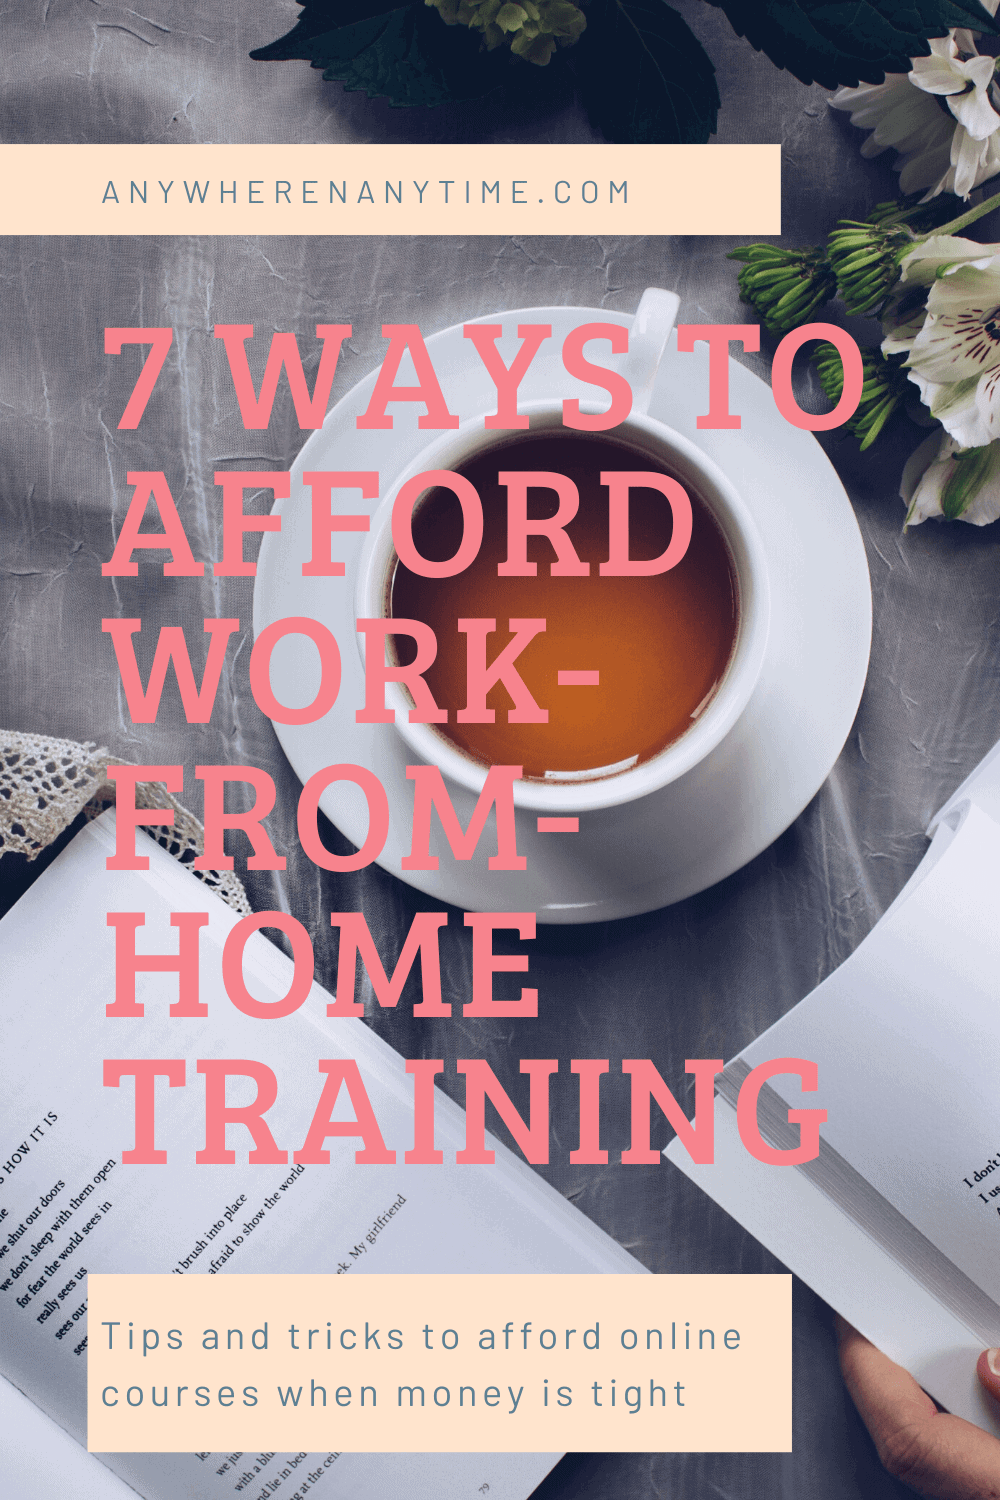 7 Ways to Afford Work-from-Home Training When Money is Tight